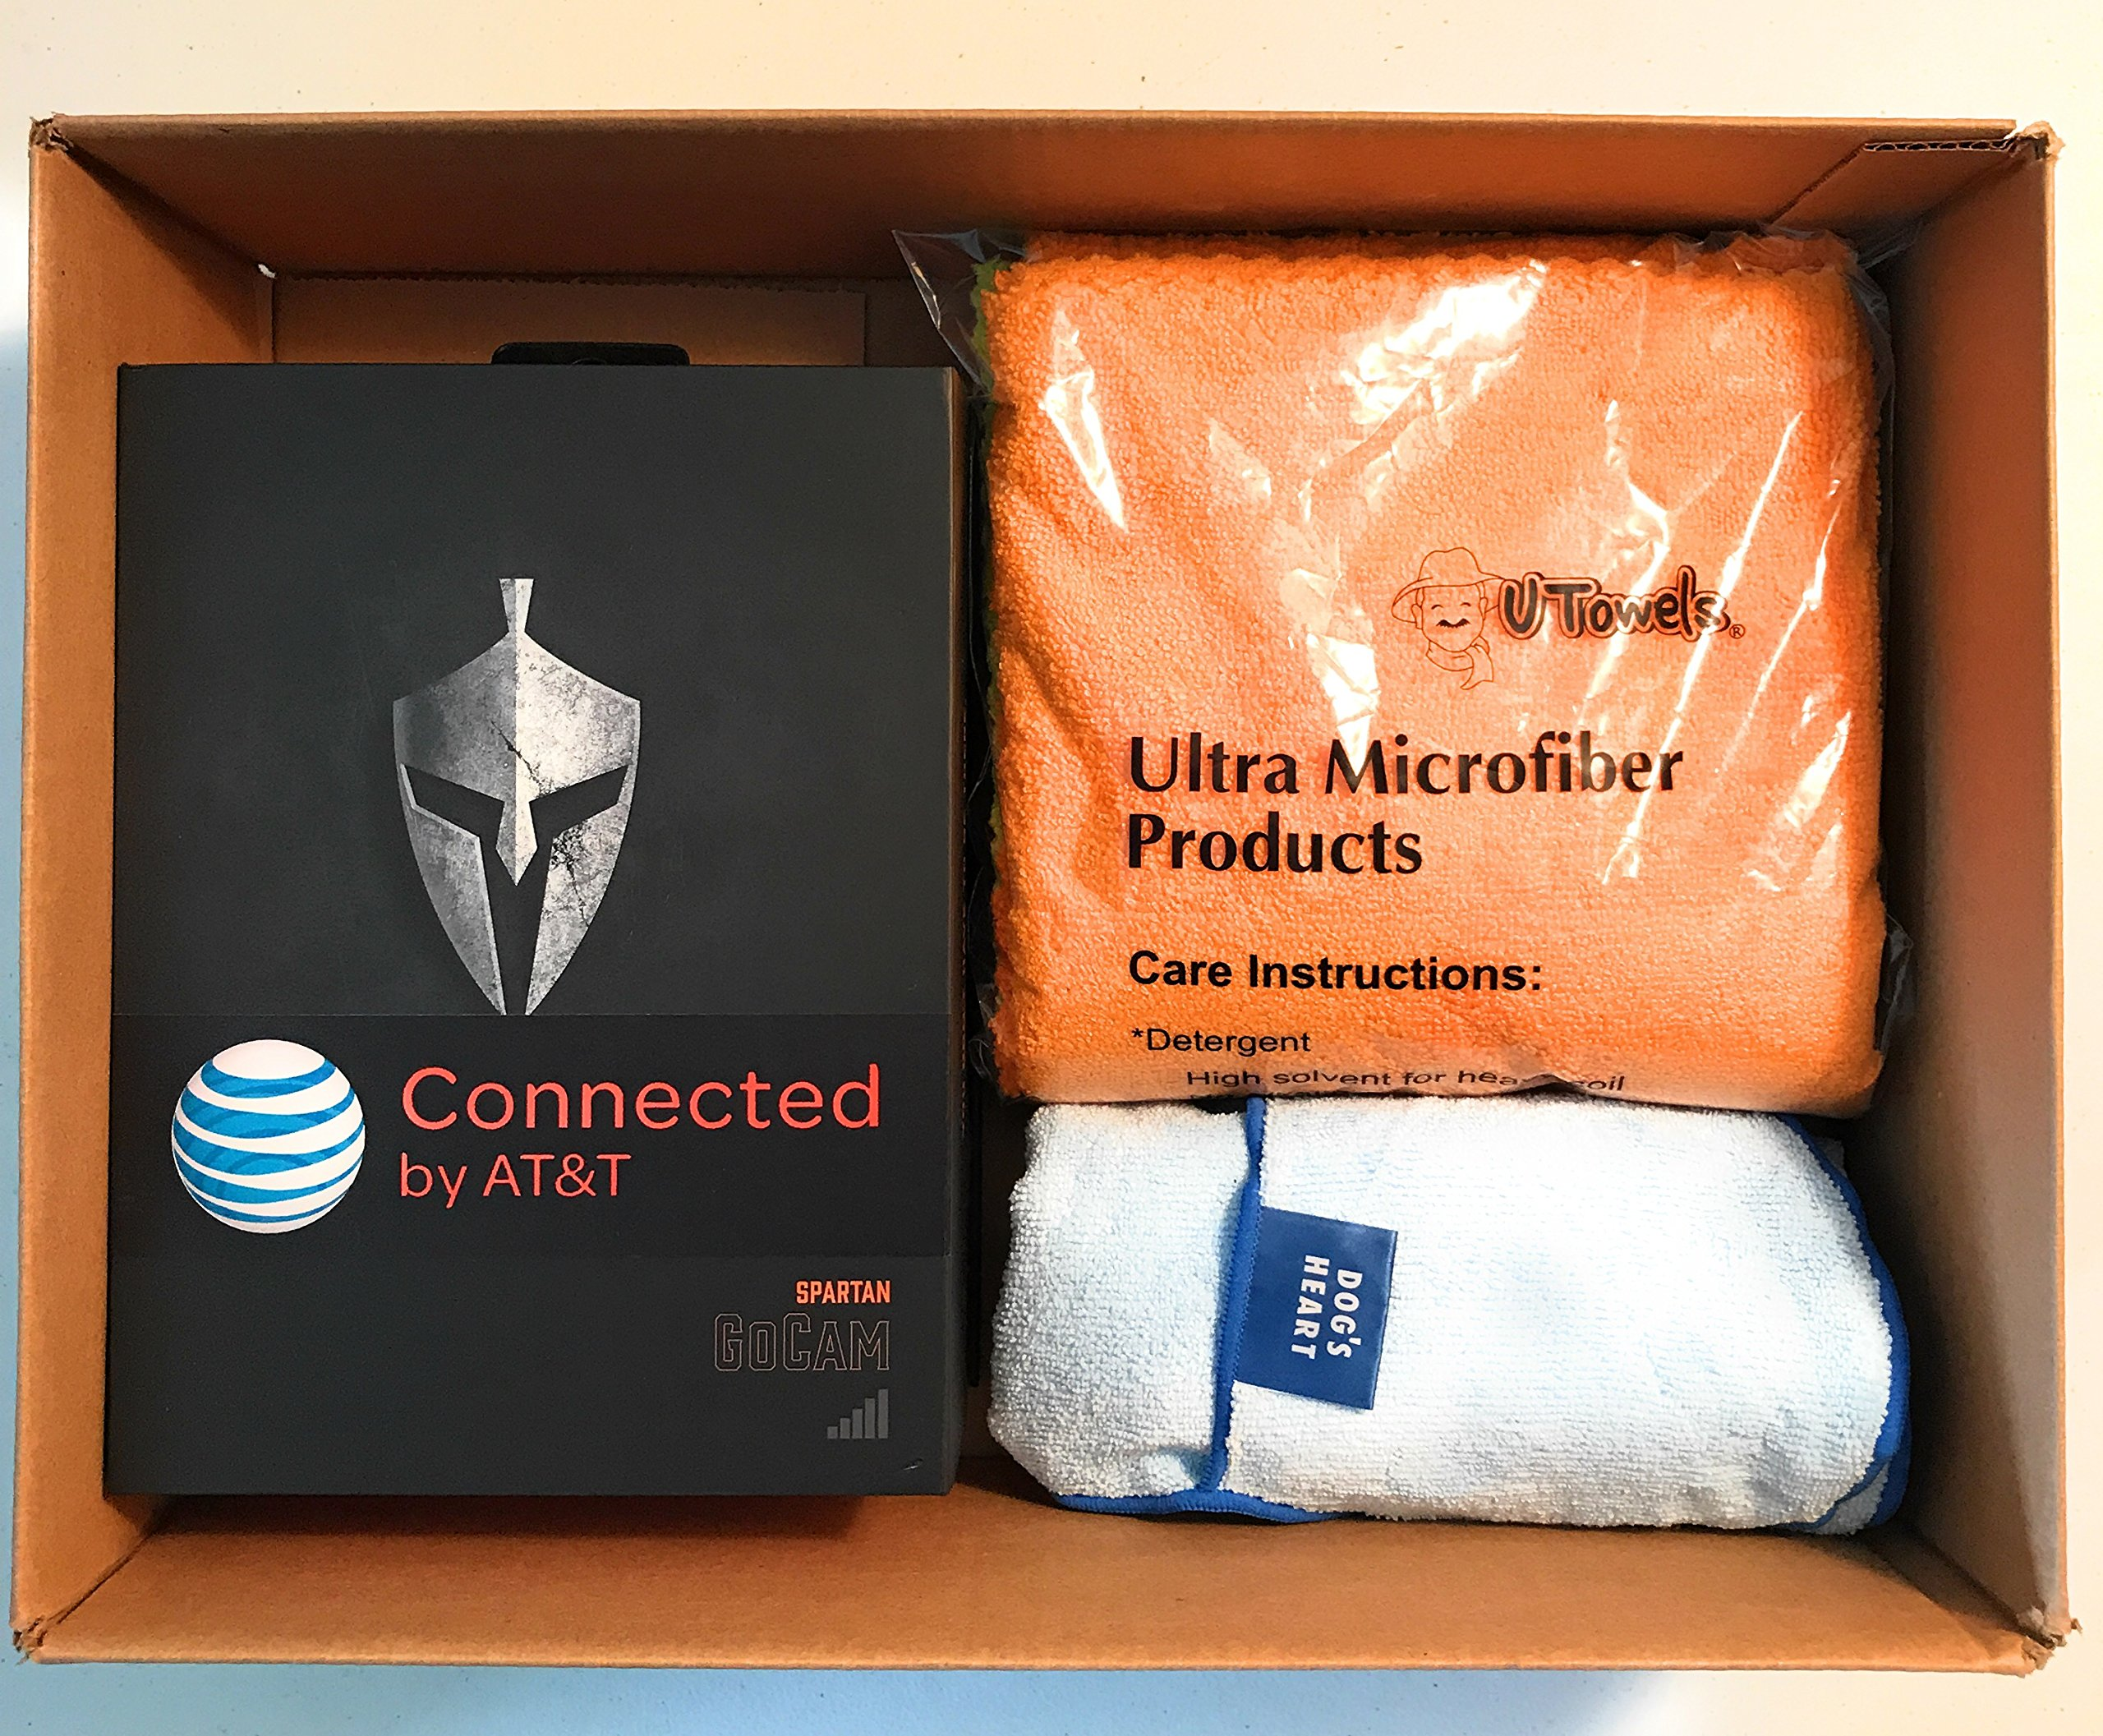 Spartan HD GoCam (AT&T Version, Model#GC-ATTi) 3G Wireless, Infrared (2-year warranty) - Bonus Package Bundled with UTowels Edgeless Microfiber Towels by Spartan (Image #4)